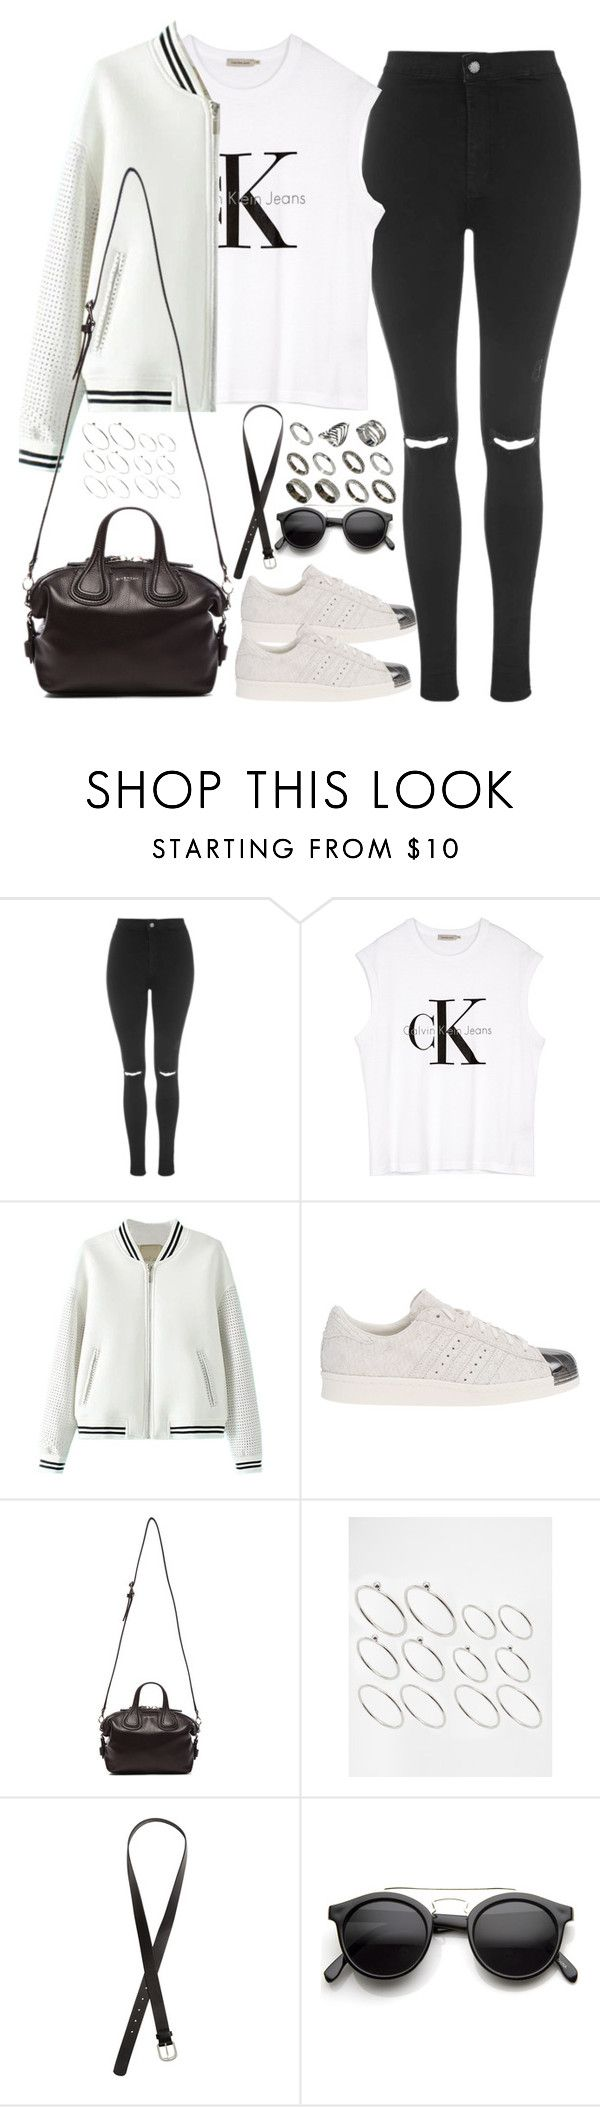 """""""Untitled#4086"""" by fashionnfacts ❤ liked on Polyvore featuring Topshop, Calvin Klein, adidas Originals, Givenchy, ASOS, H&M and Retrò"""